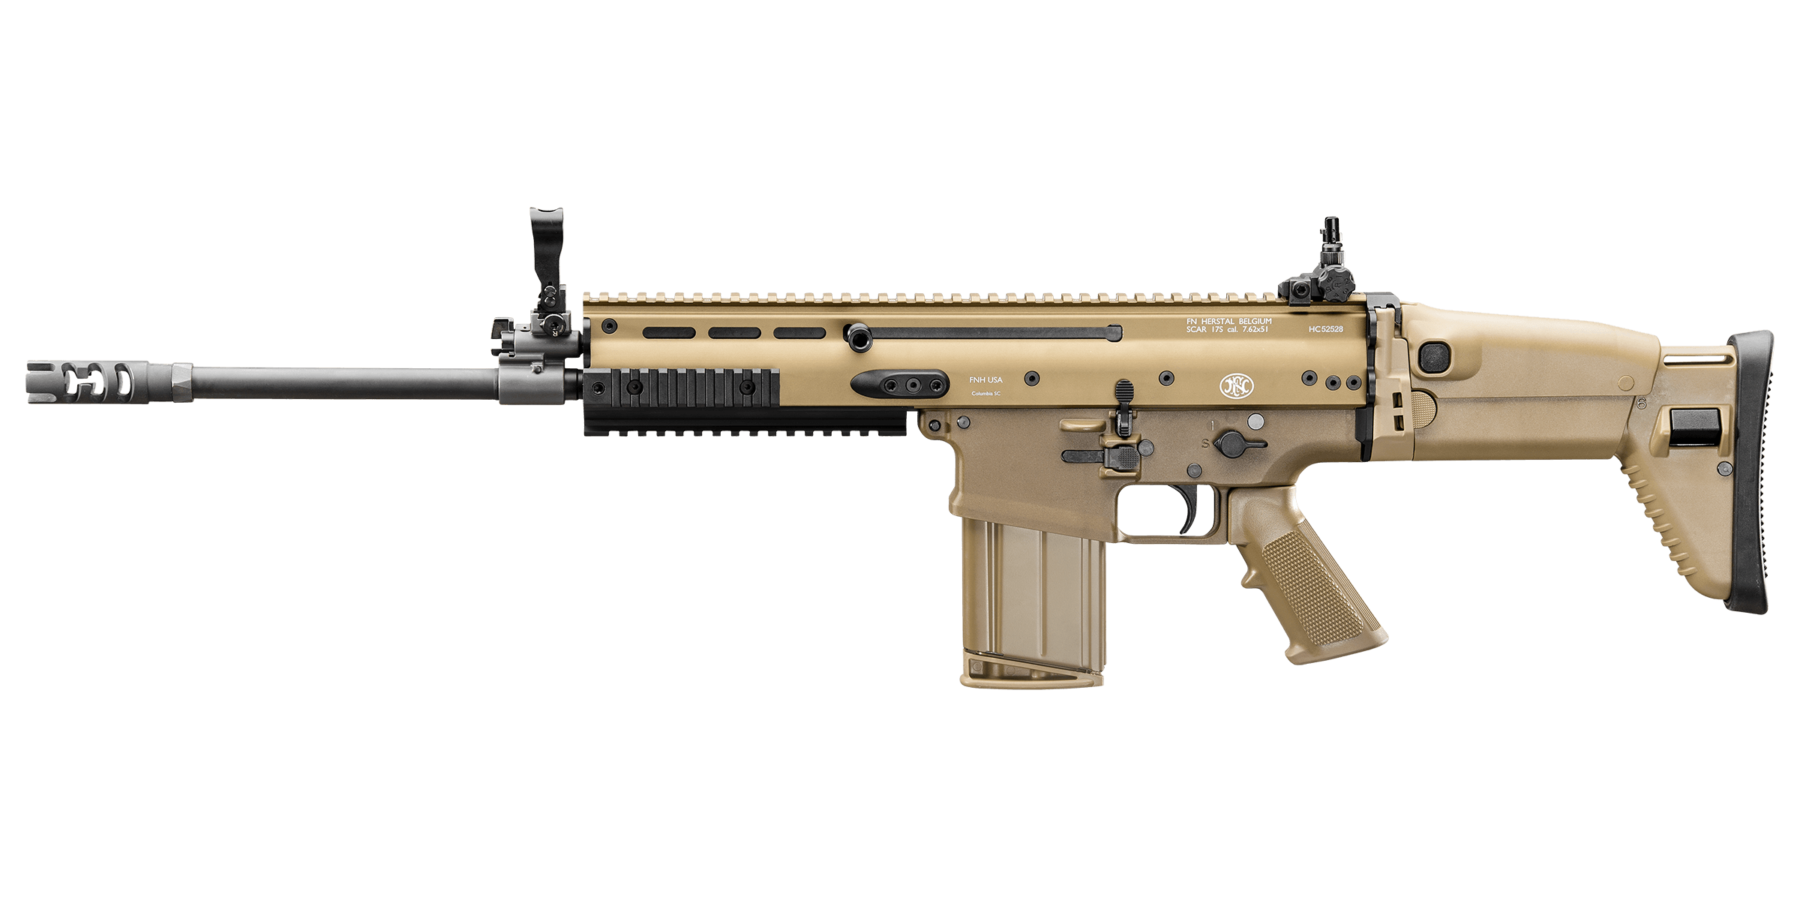 Transparent rifle scar h. Fn s